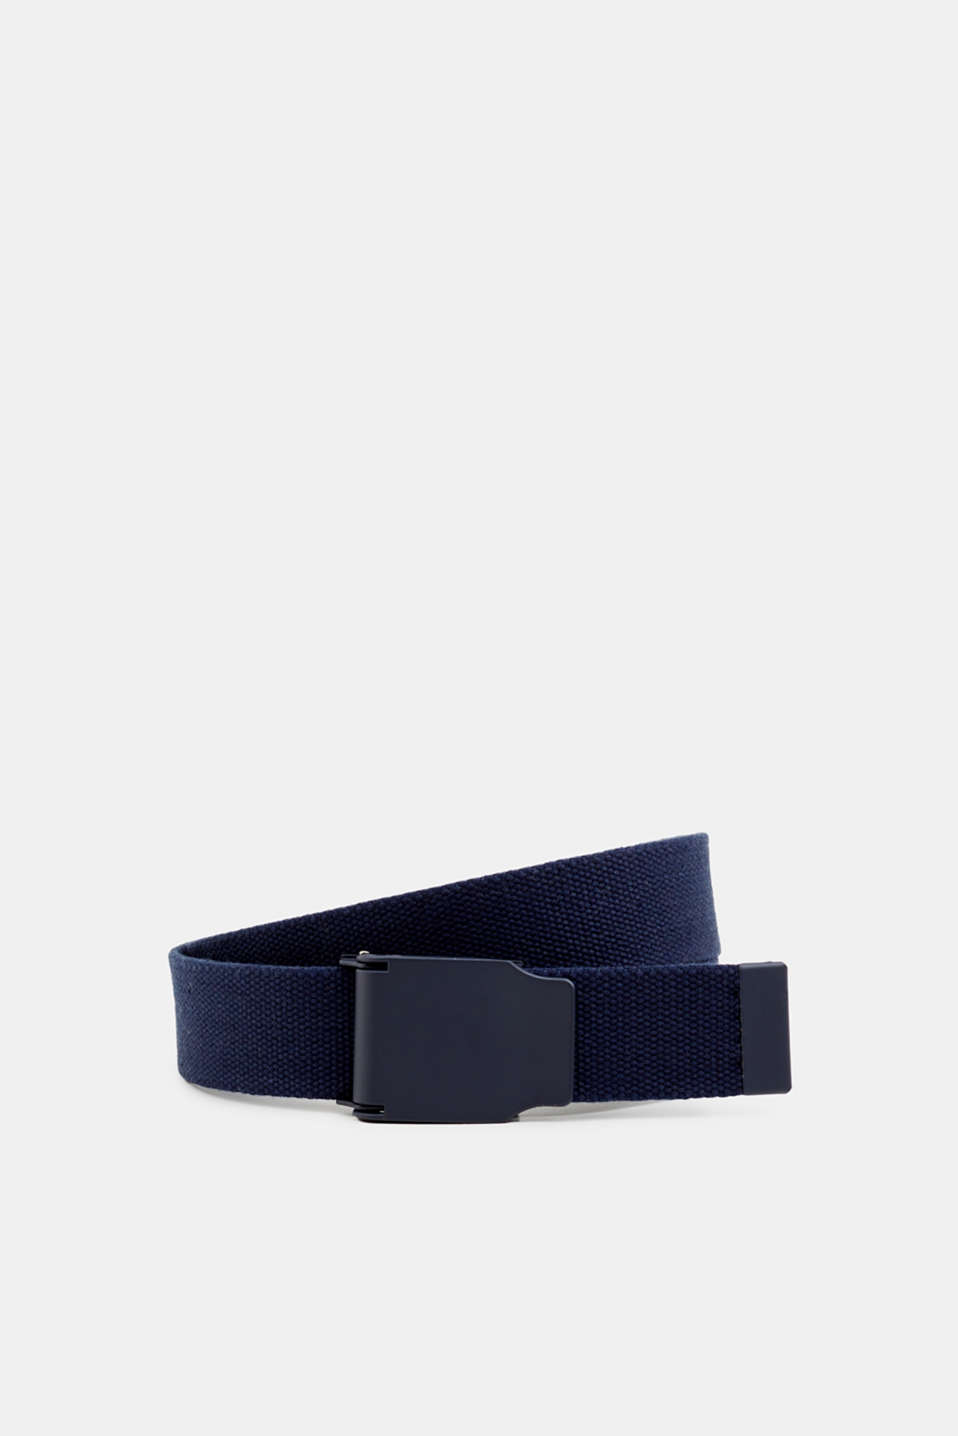 Woven belt with a metal fastener, NAVY, detail image number 0